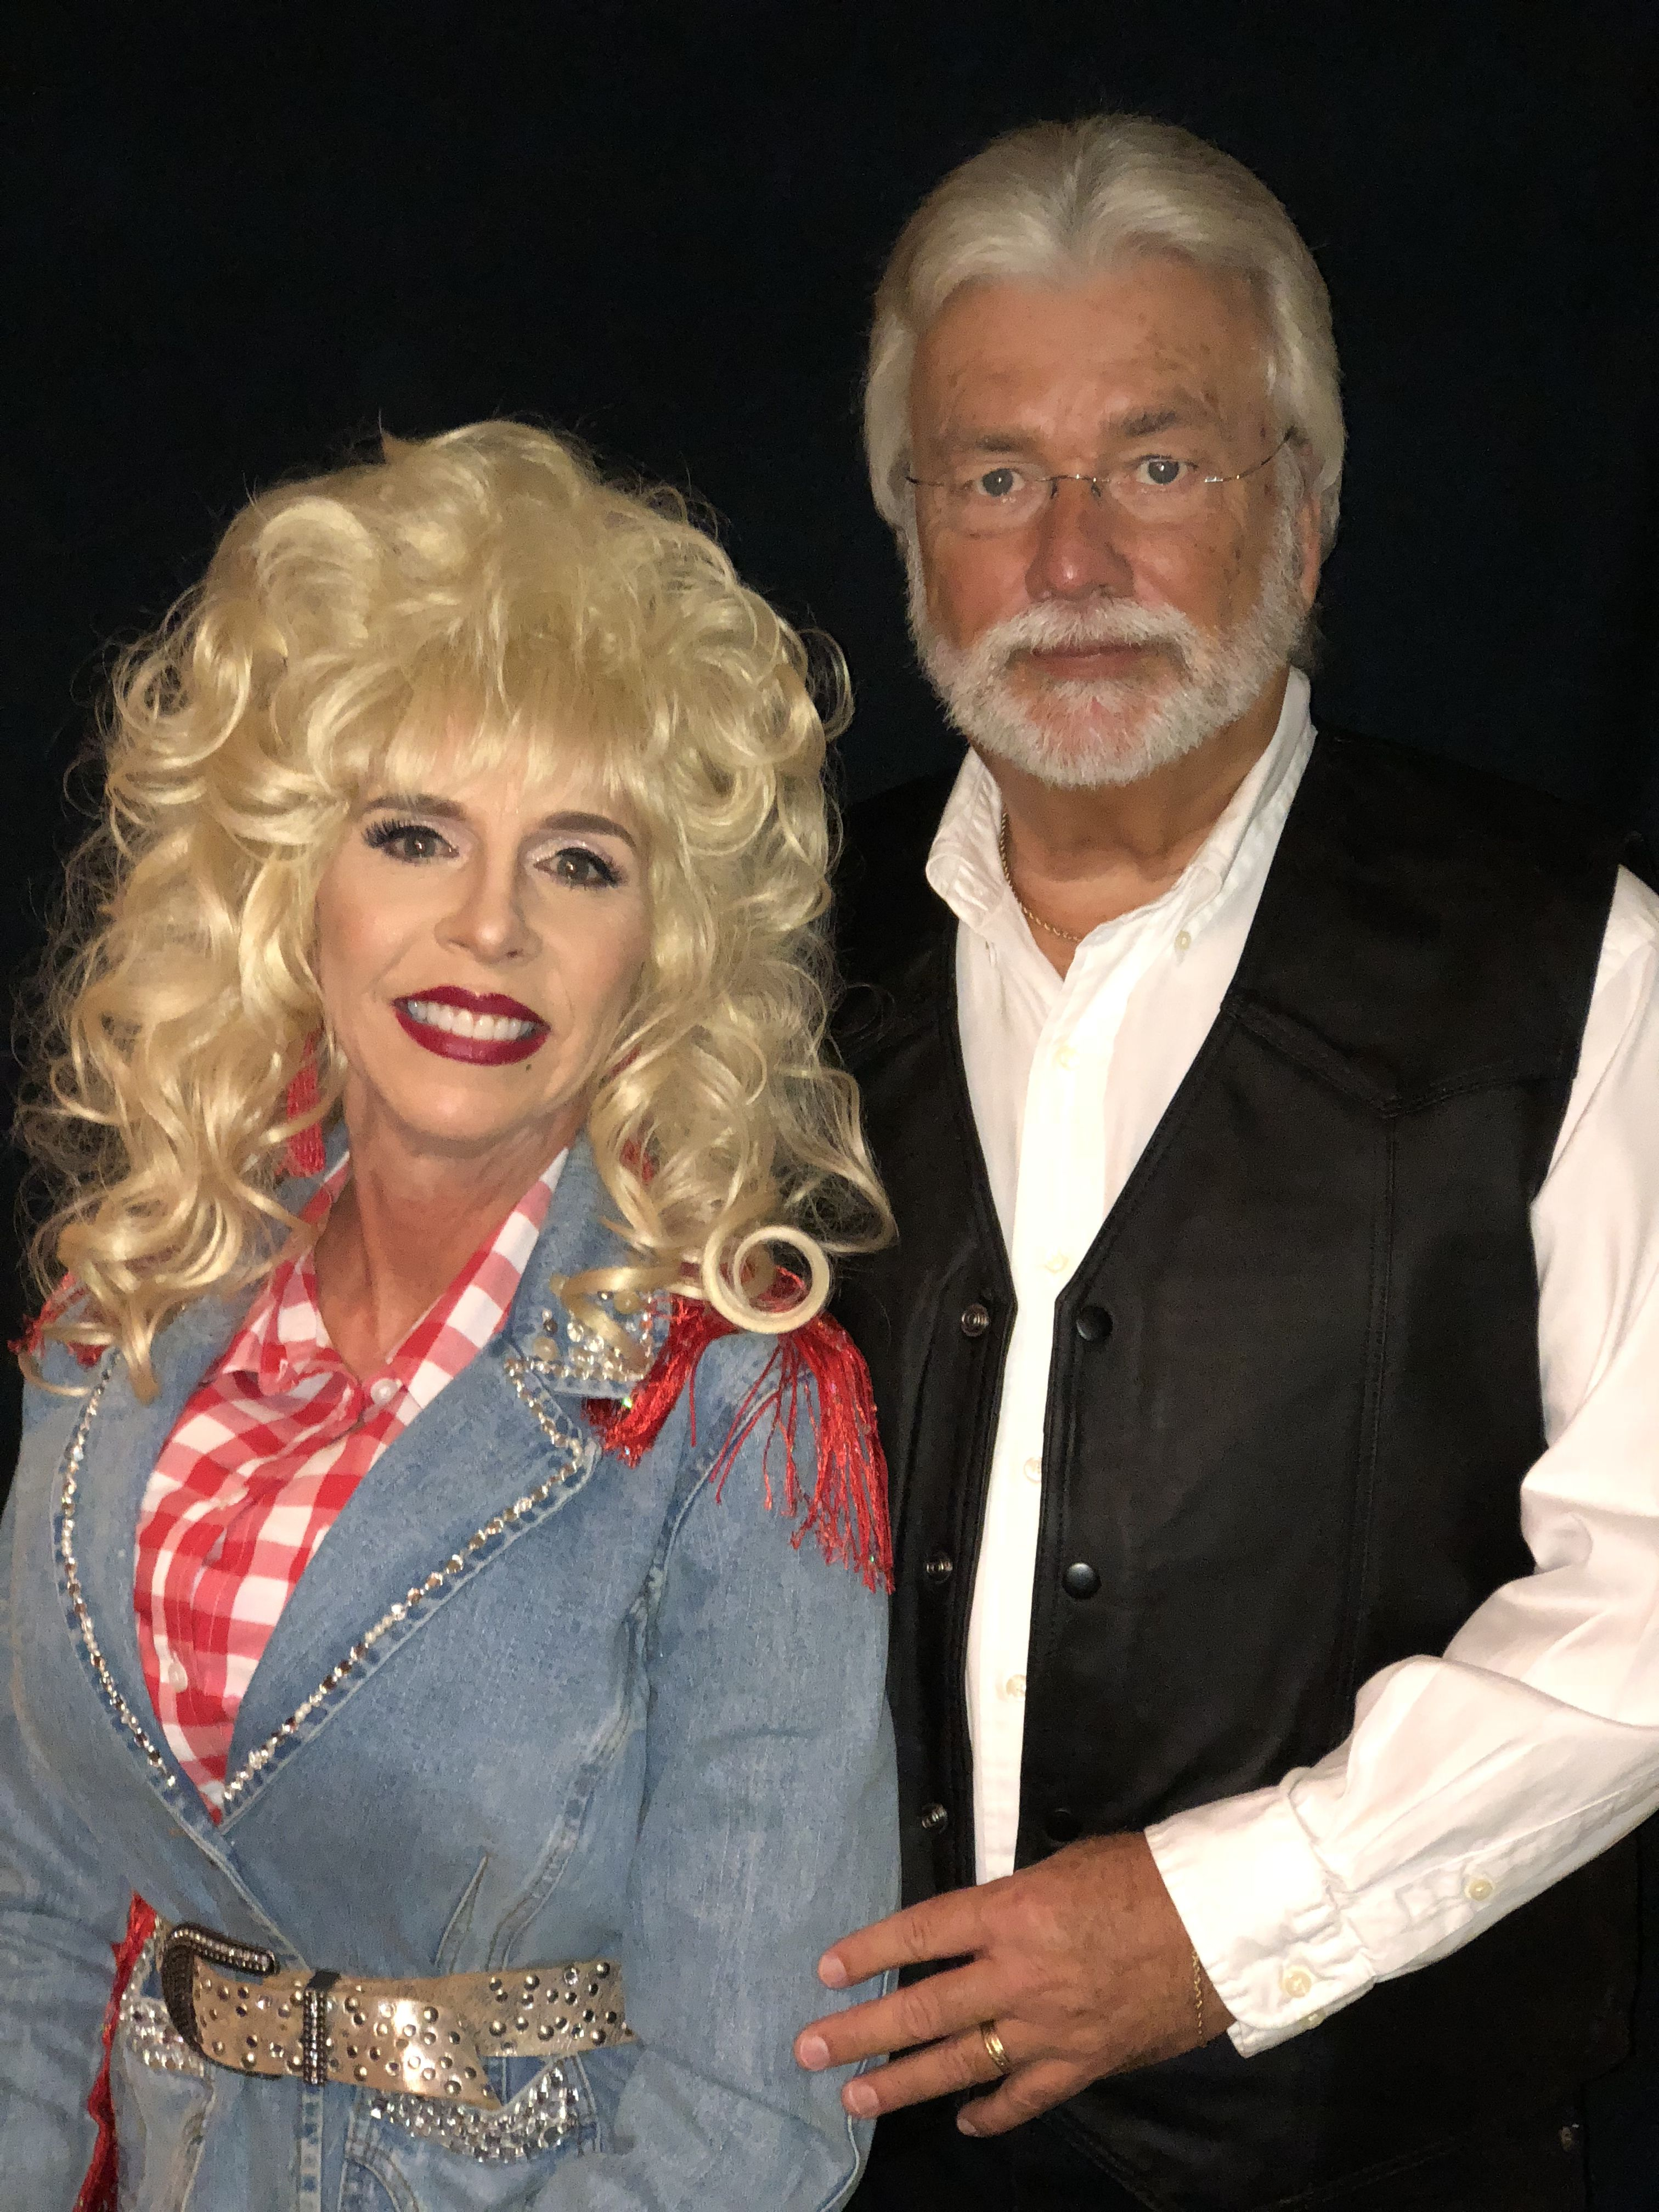 Dolly And Kenny Couple Halloween Costumes Couple Halloween Halloween Costumes